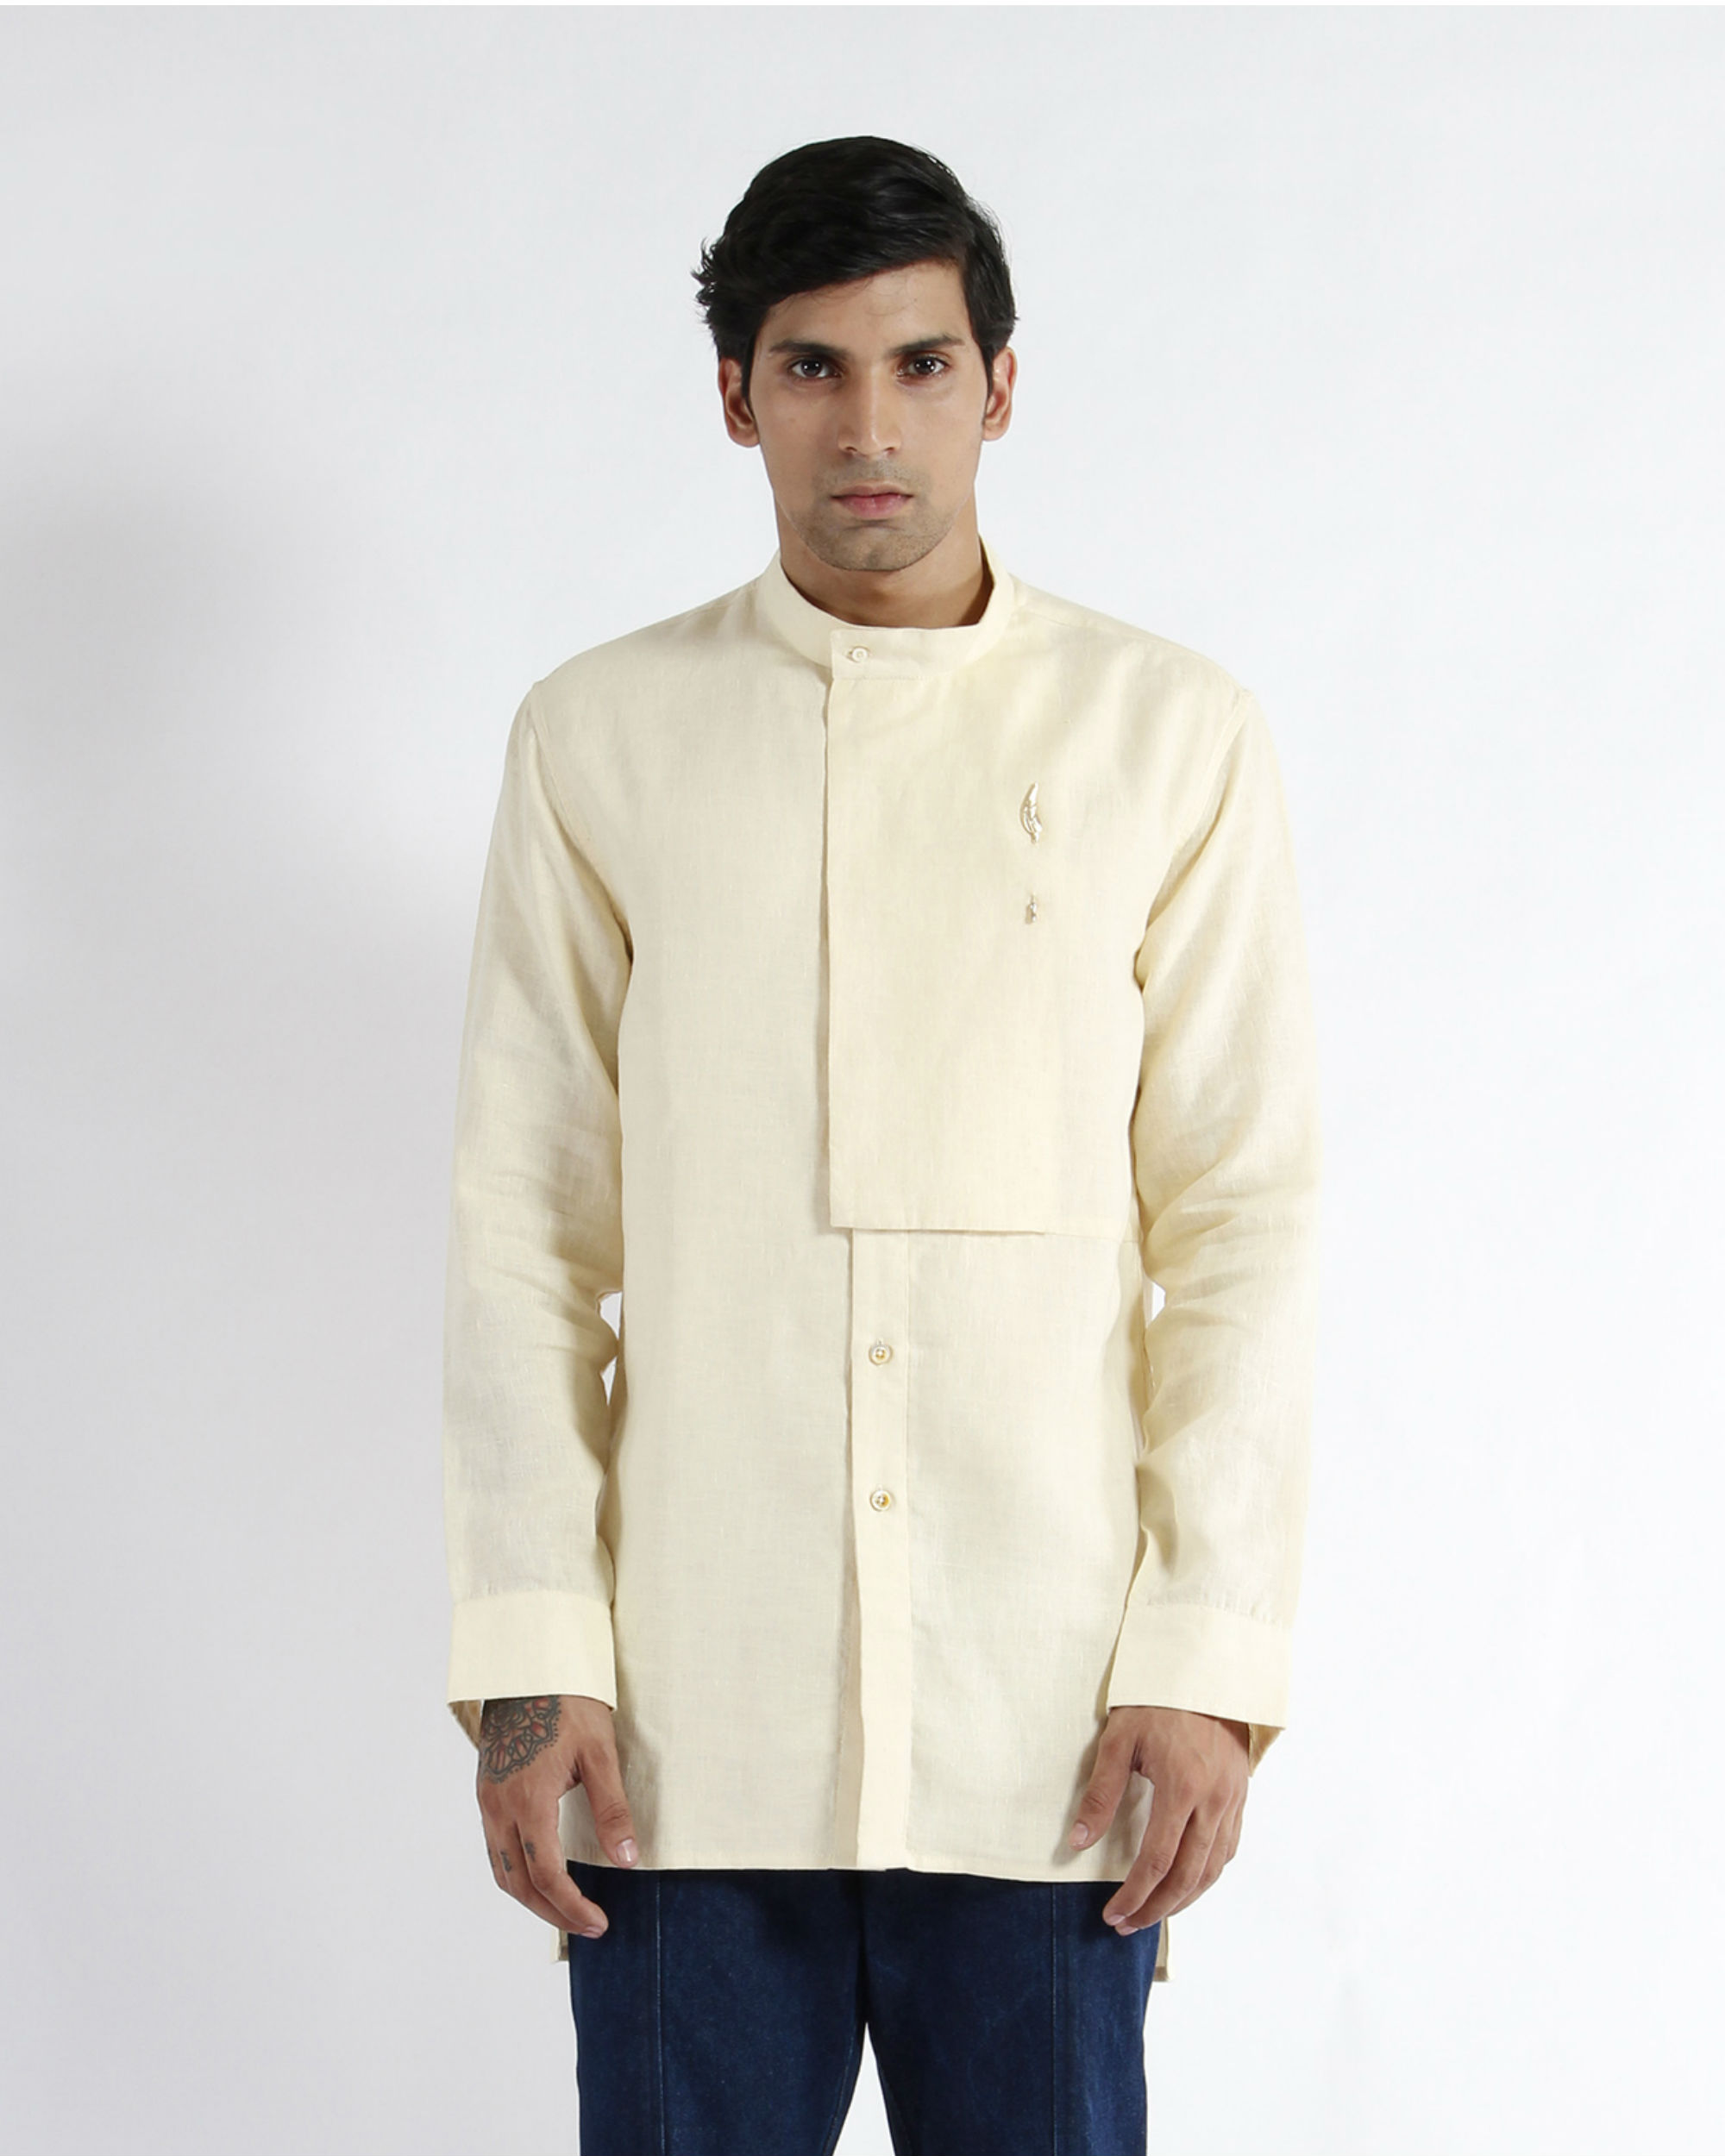 Off white linen embroidered tunic shirt